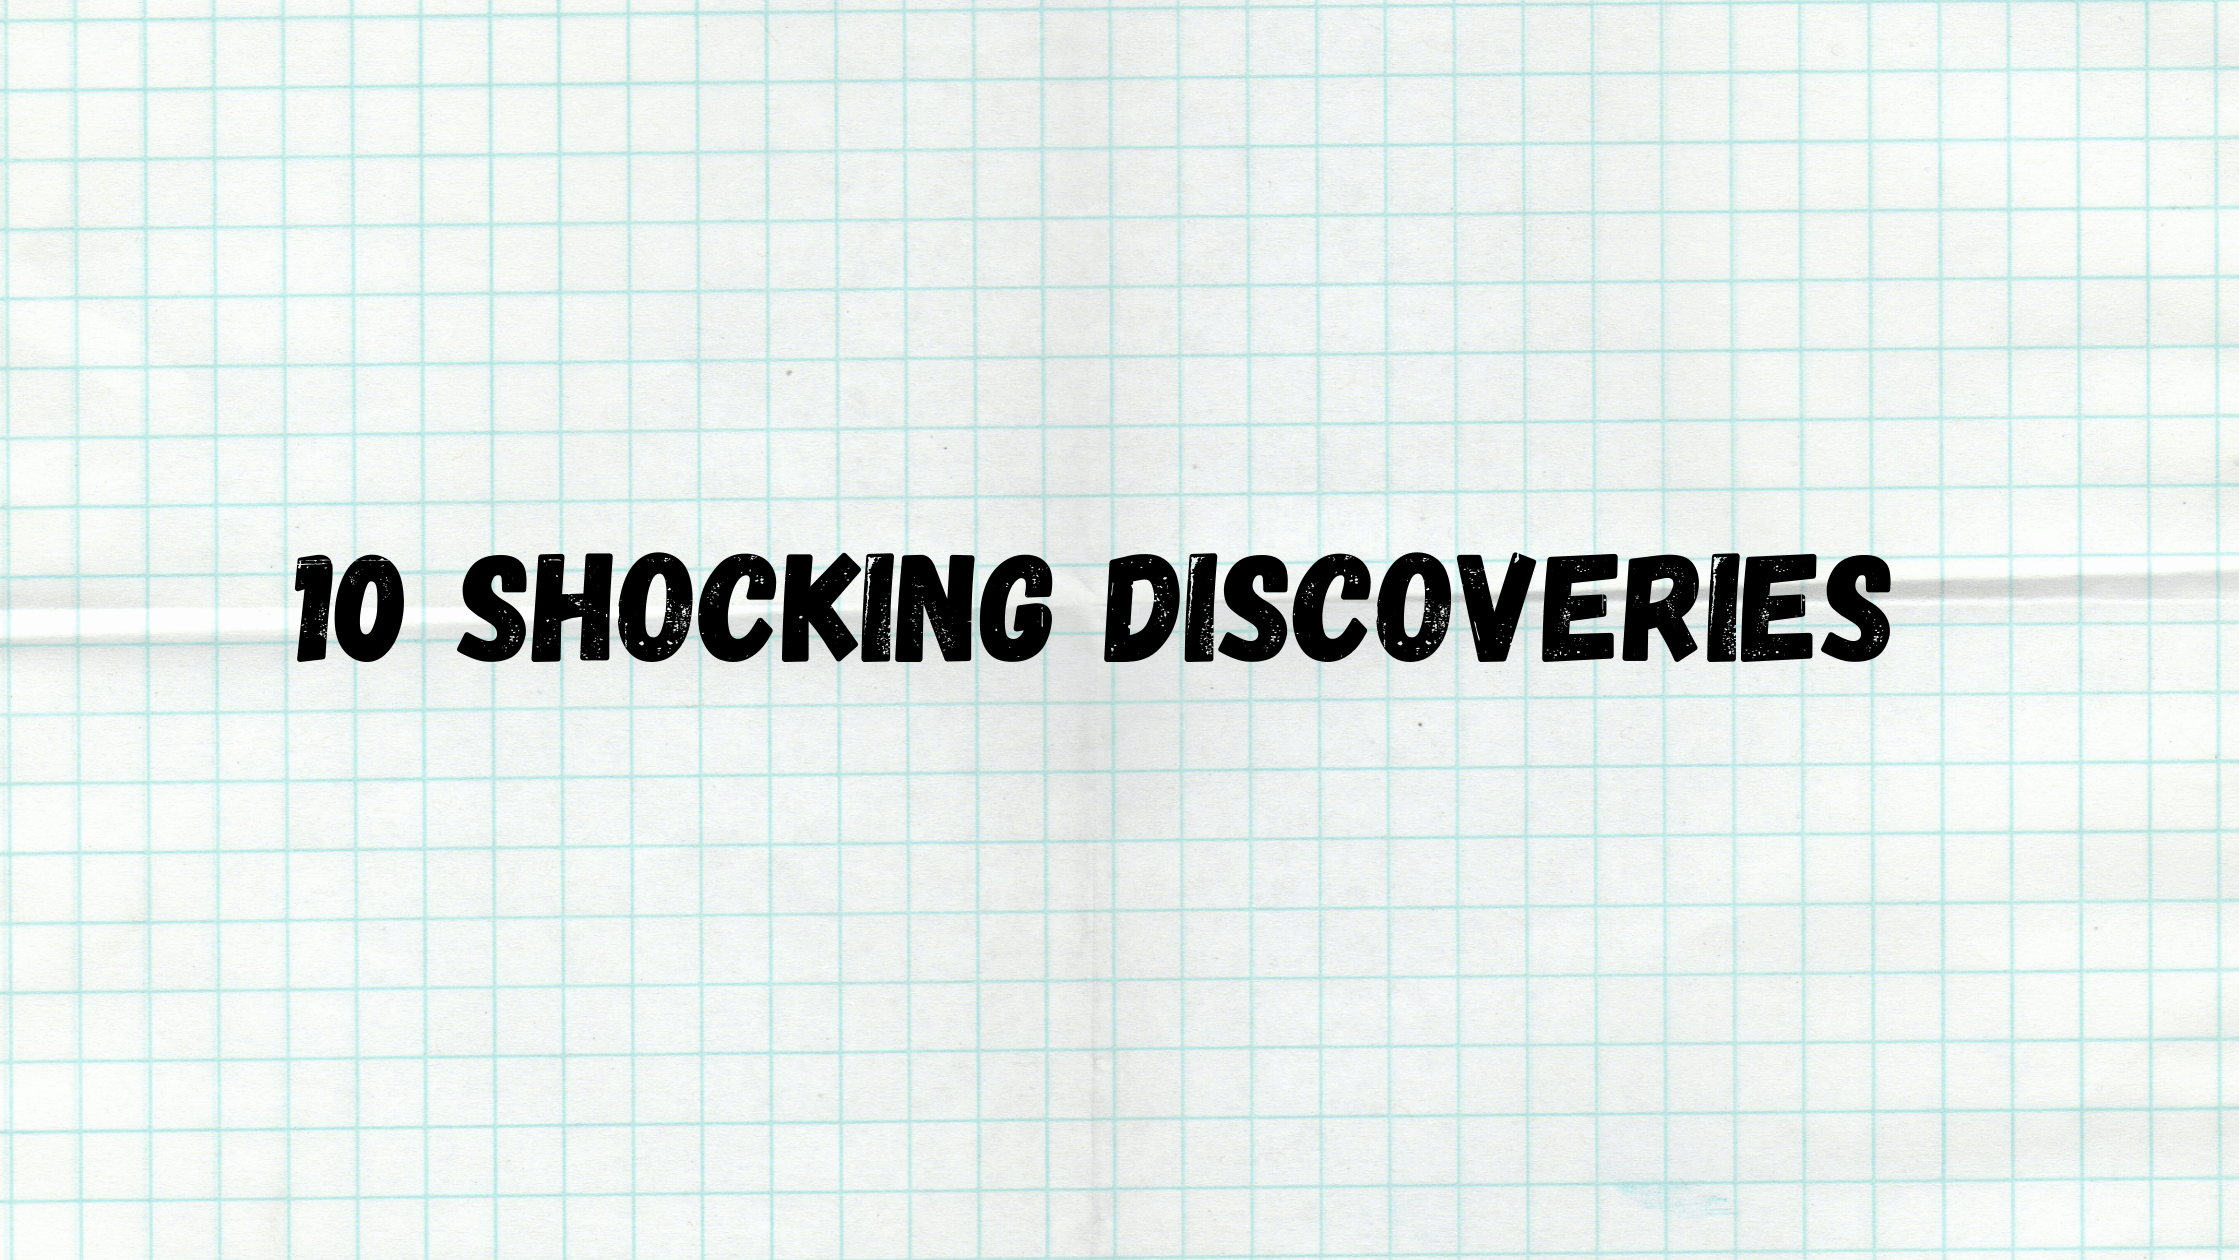 10 Shocking Discoveries